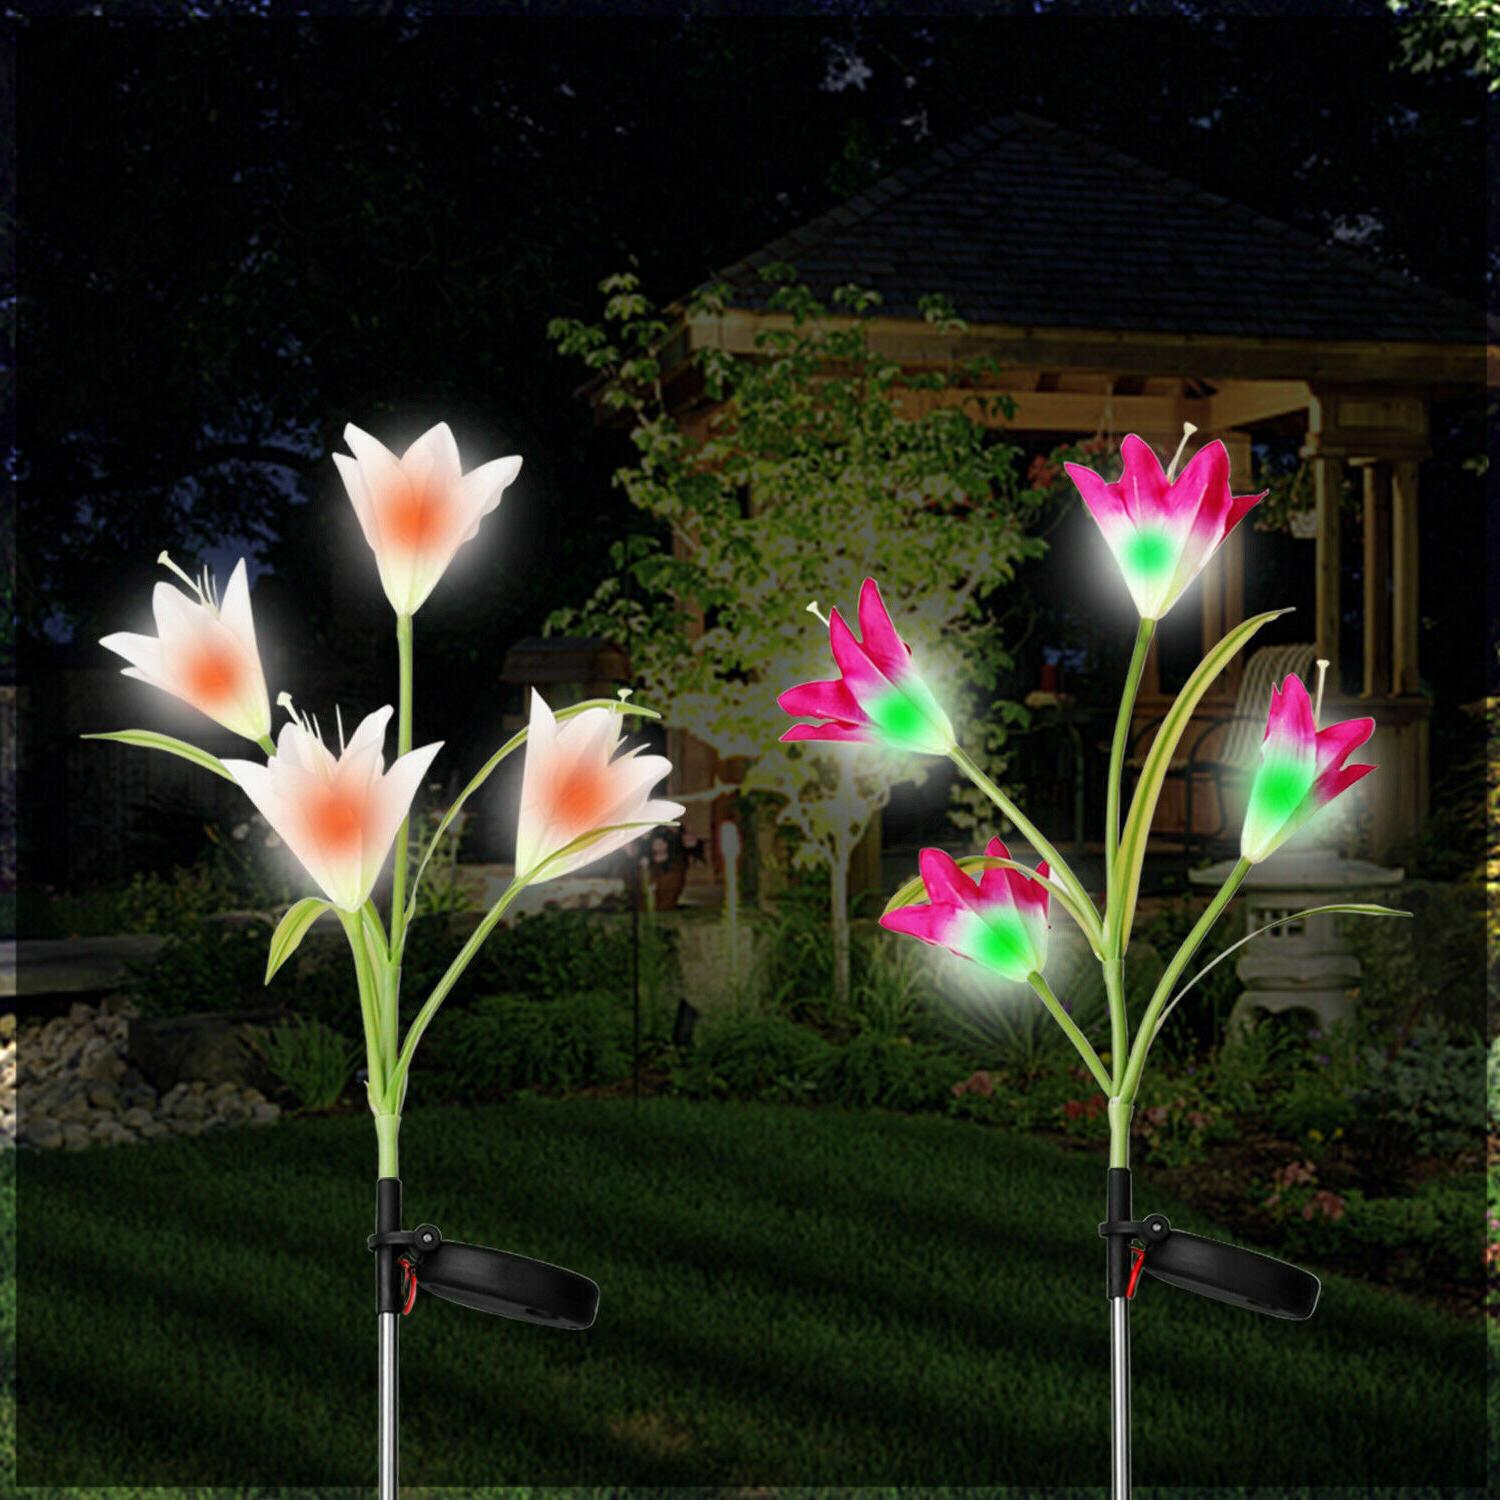 2 Flower LED Garden Patio Stake Lamps Home Decor